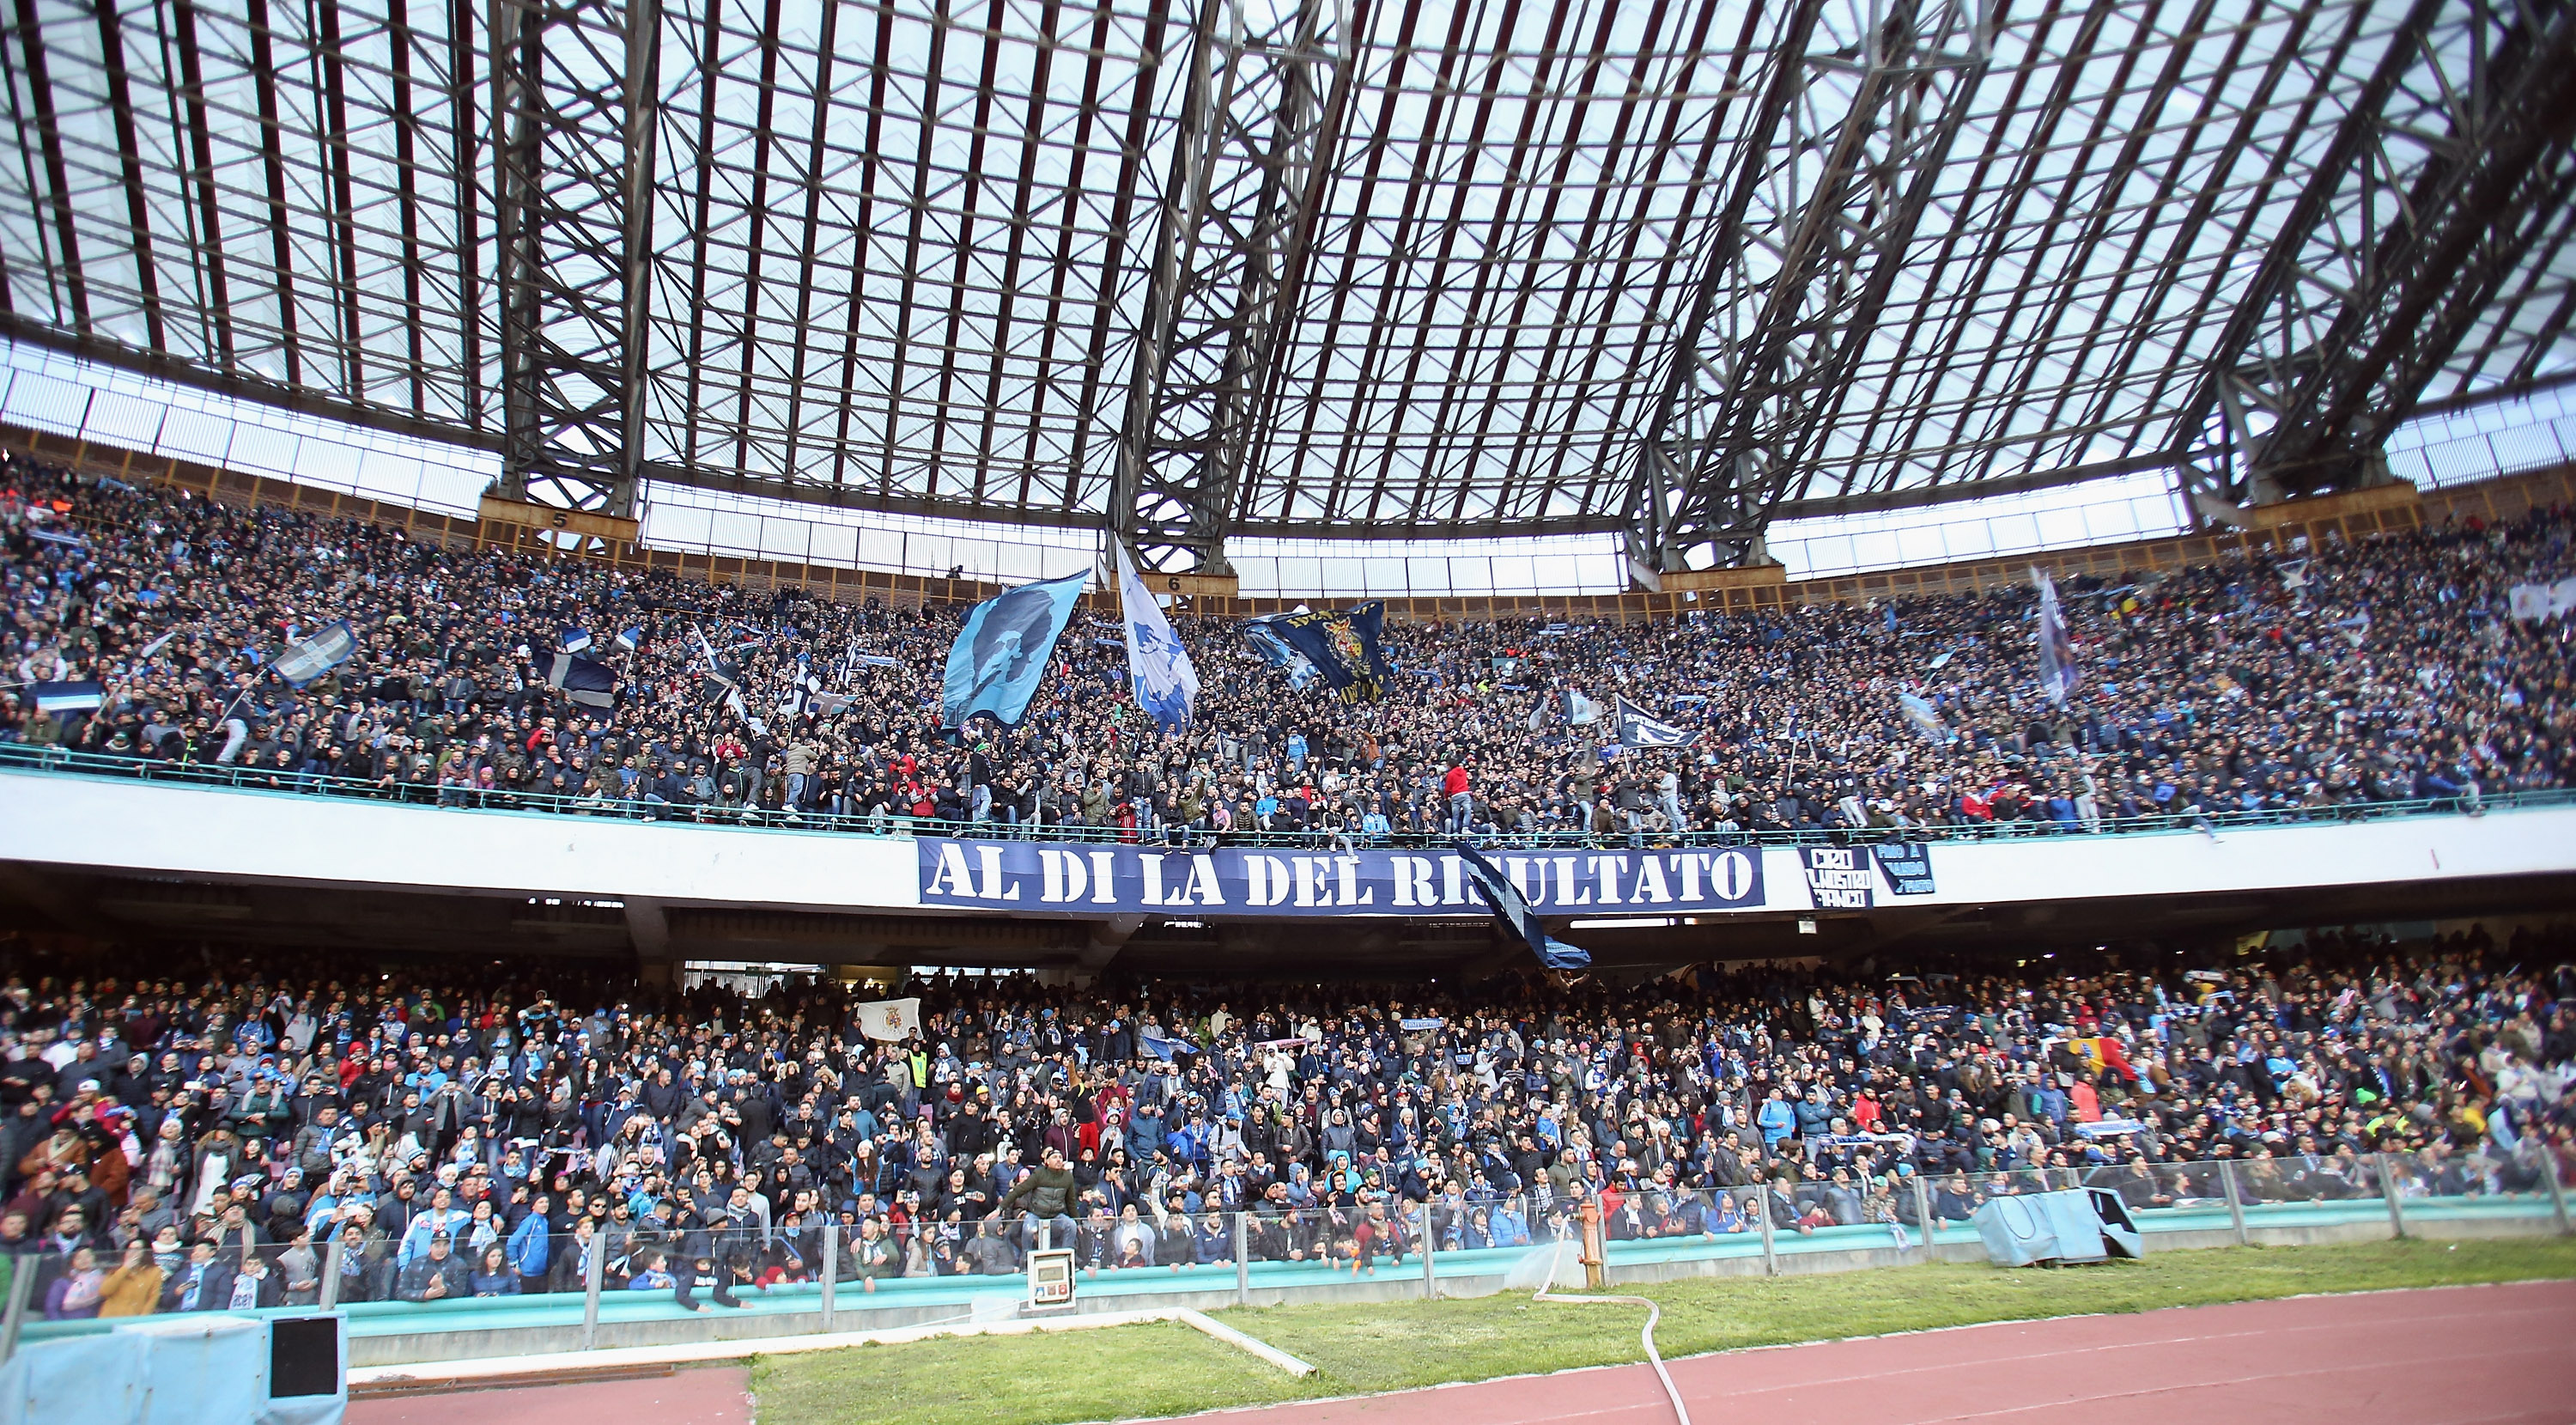 Champions league l 39 appello del napoli ai tifosi 100x100 for San paolo mutuo 100